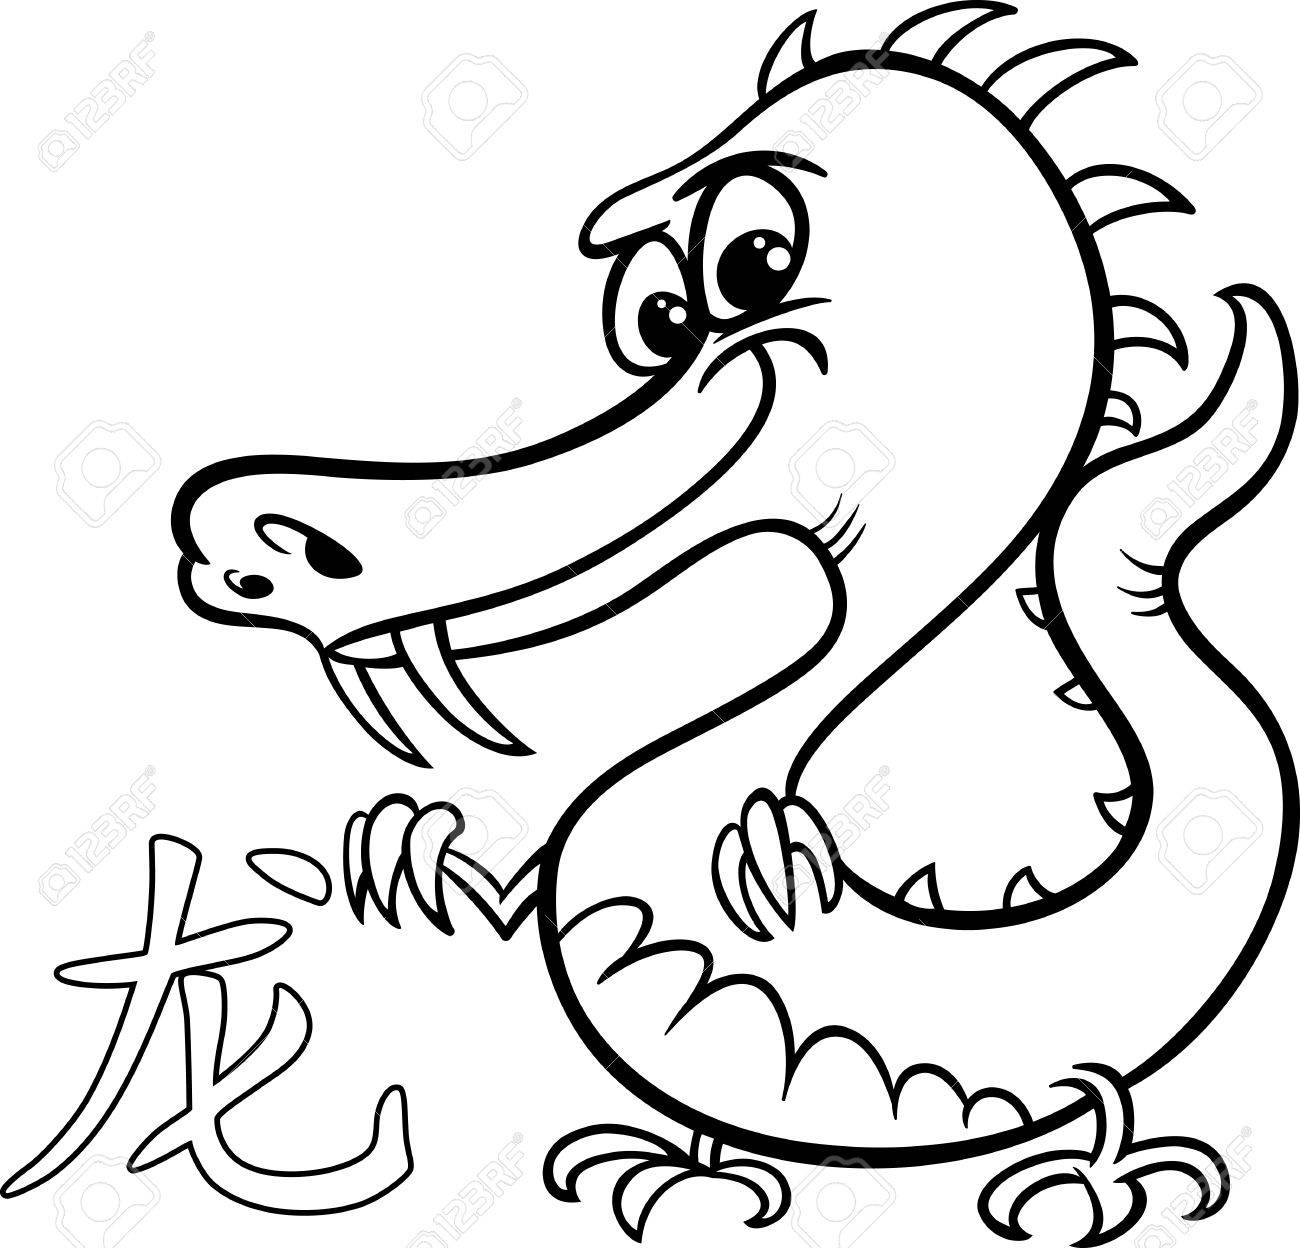 1300x1248 Black And White Cartoon Illustration Of Dragon Chinese Horoscope